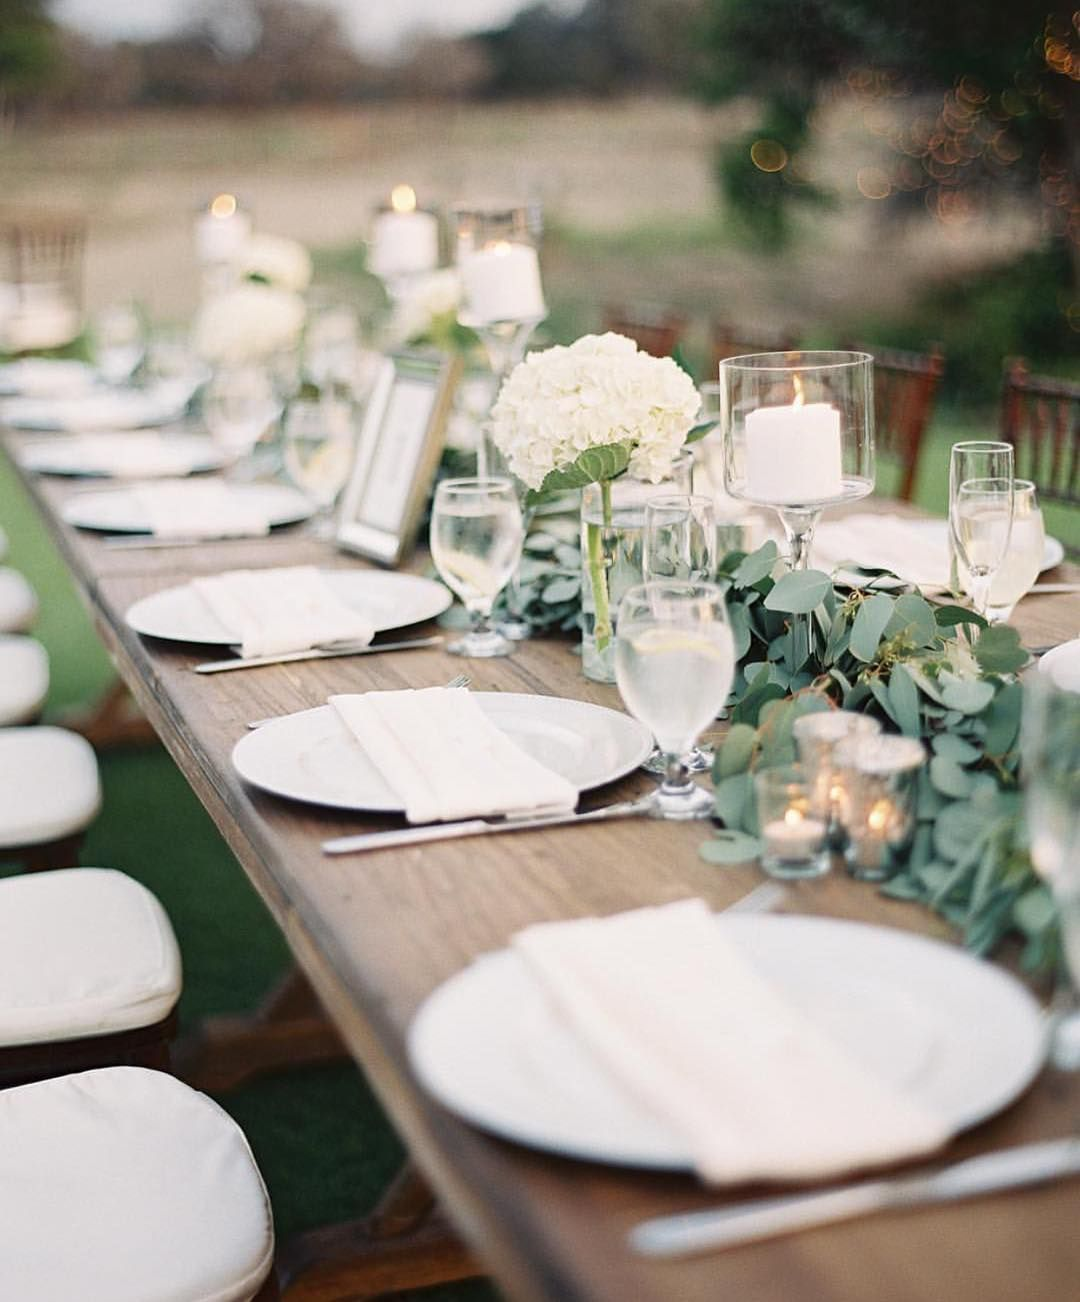 Simple Wedding Table Ideas: Simple + Clean Tablescape #repost @spostophoto #event